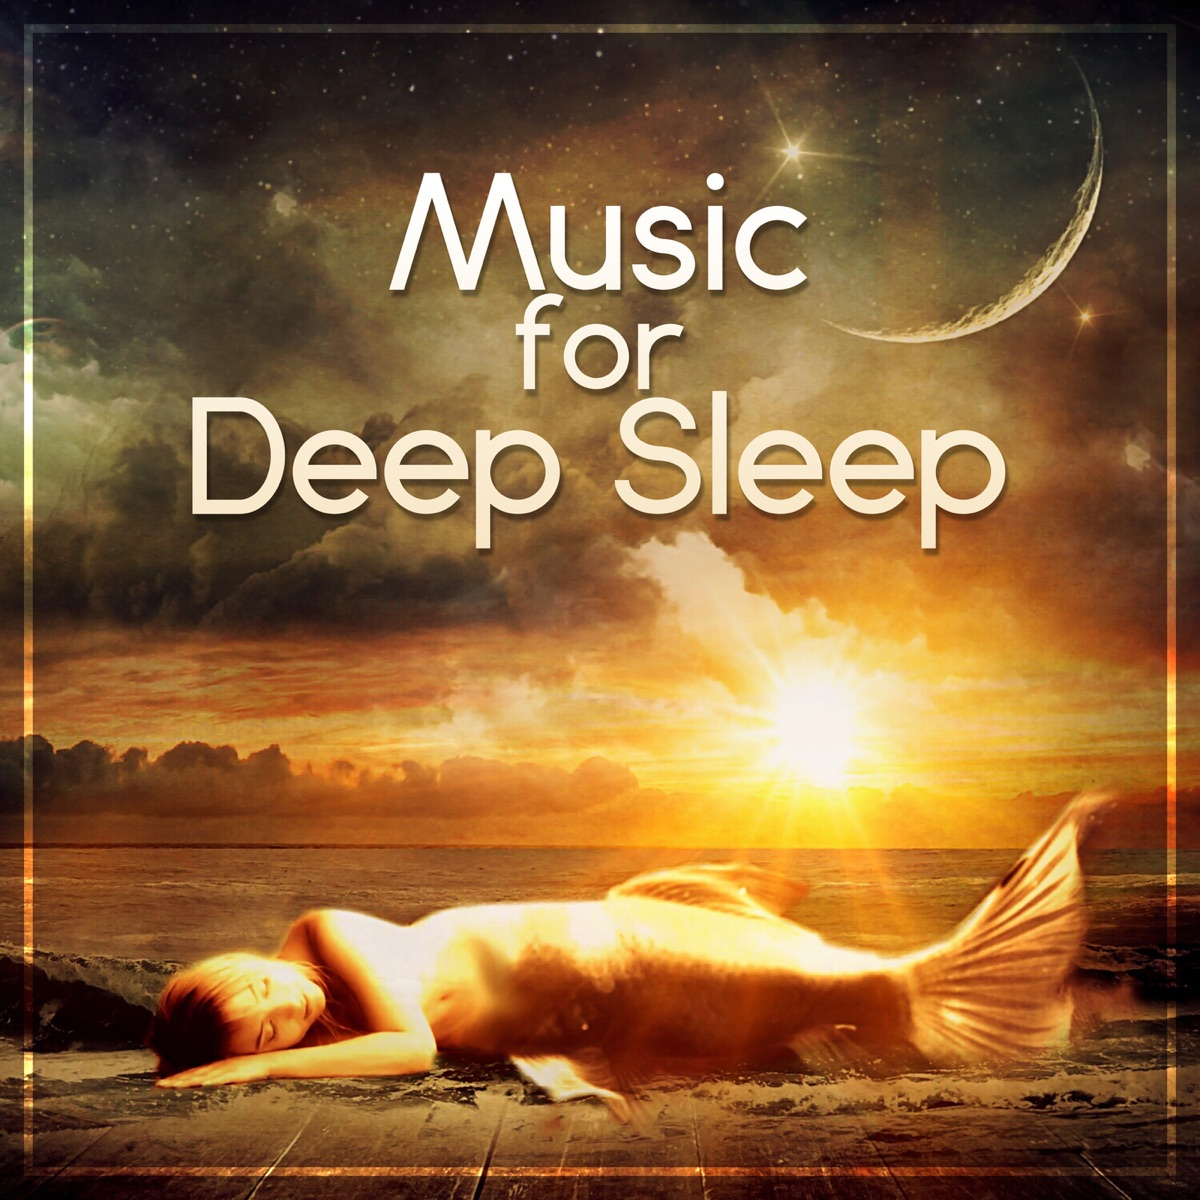 New Age Meditation 101 – Music Therapy for Deep Relaxation & Massage, Zen Yoga, Natural Sounds Ambience, Healthy Baby Sleep and Study